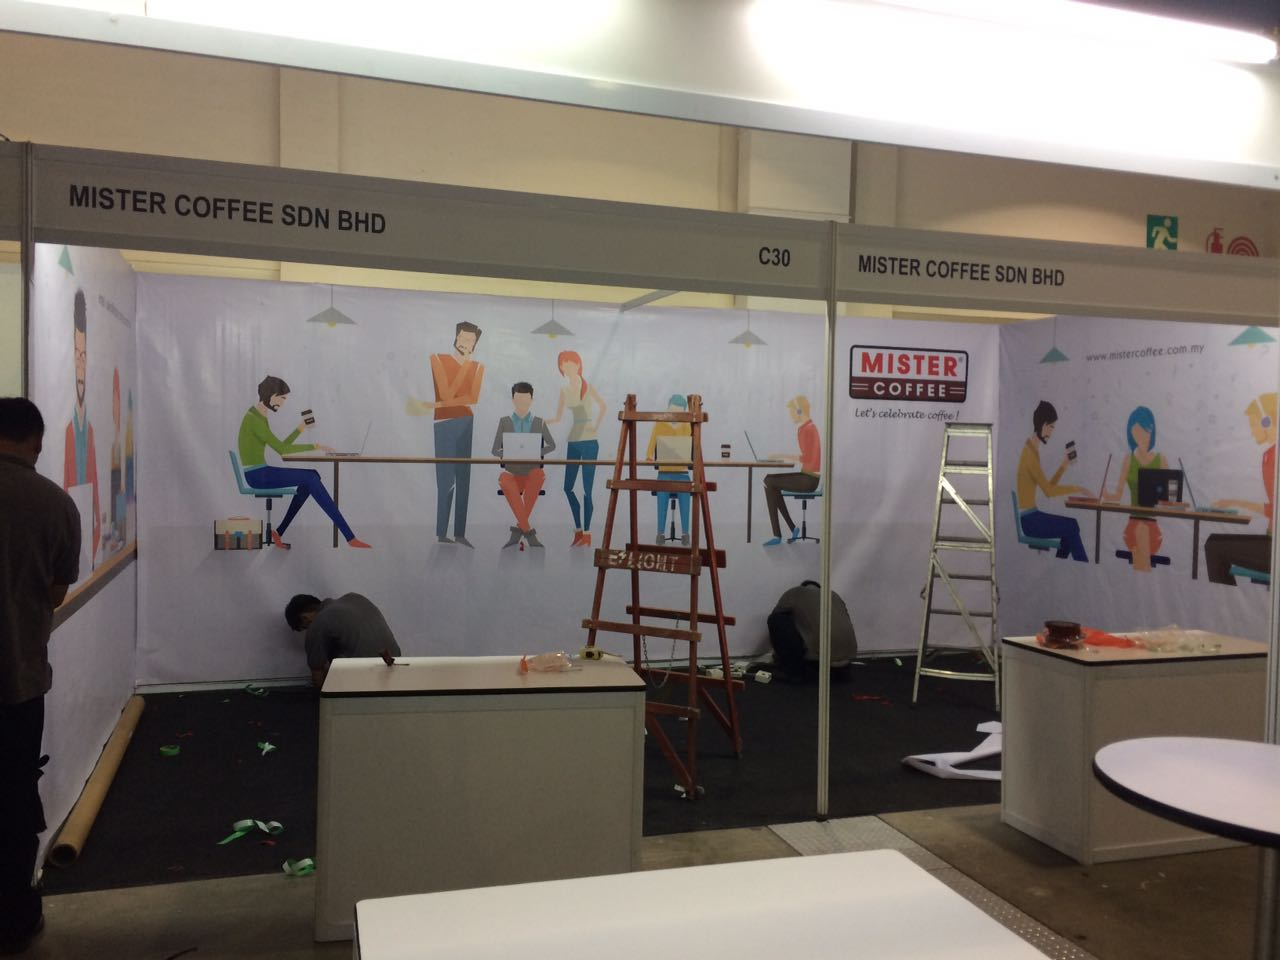 Exhibition Booth Backdrop : Exhibition backdrop setup shell scheme backdrop setup exhibit